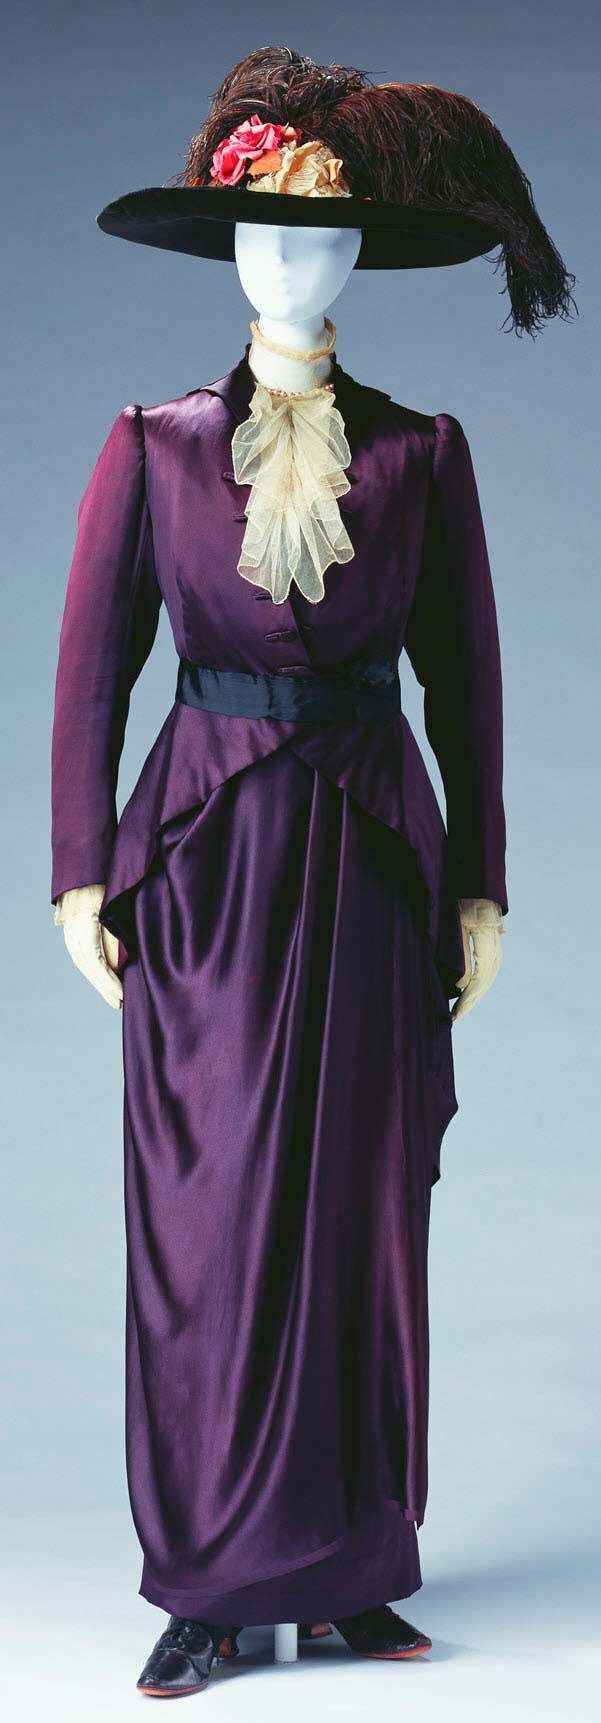 """Pierre Bulloz, Paris, ca. 1910. Deep purple silk satin; set of jacket, bodice, and skirt; black silk faille belt; white cotton tulle jabot on bodice. Kyoto Costume Institute: """"Women started wearing tailored suits, with designs that were influenced by men's clothing, in the middle of the 19th century as traveling wear or sportswear. At around 1910 they became a popular wardrobe staple."""" - casual mens clothing online, plus size mens clothing, mens casual clothing brands"""